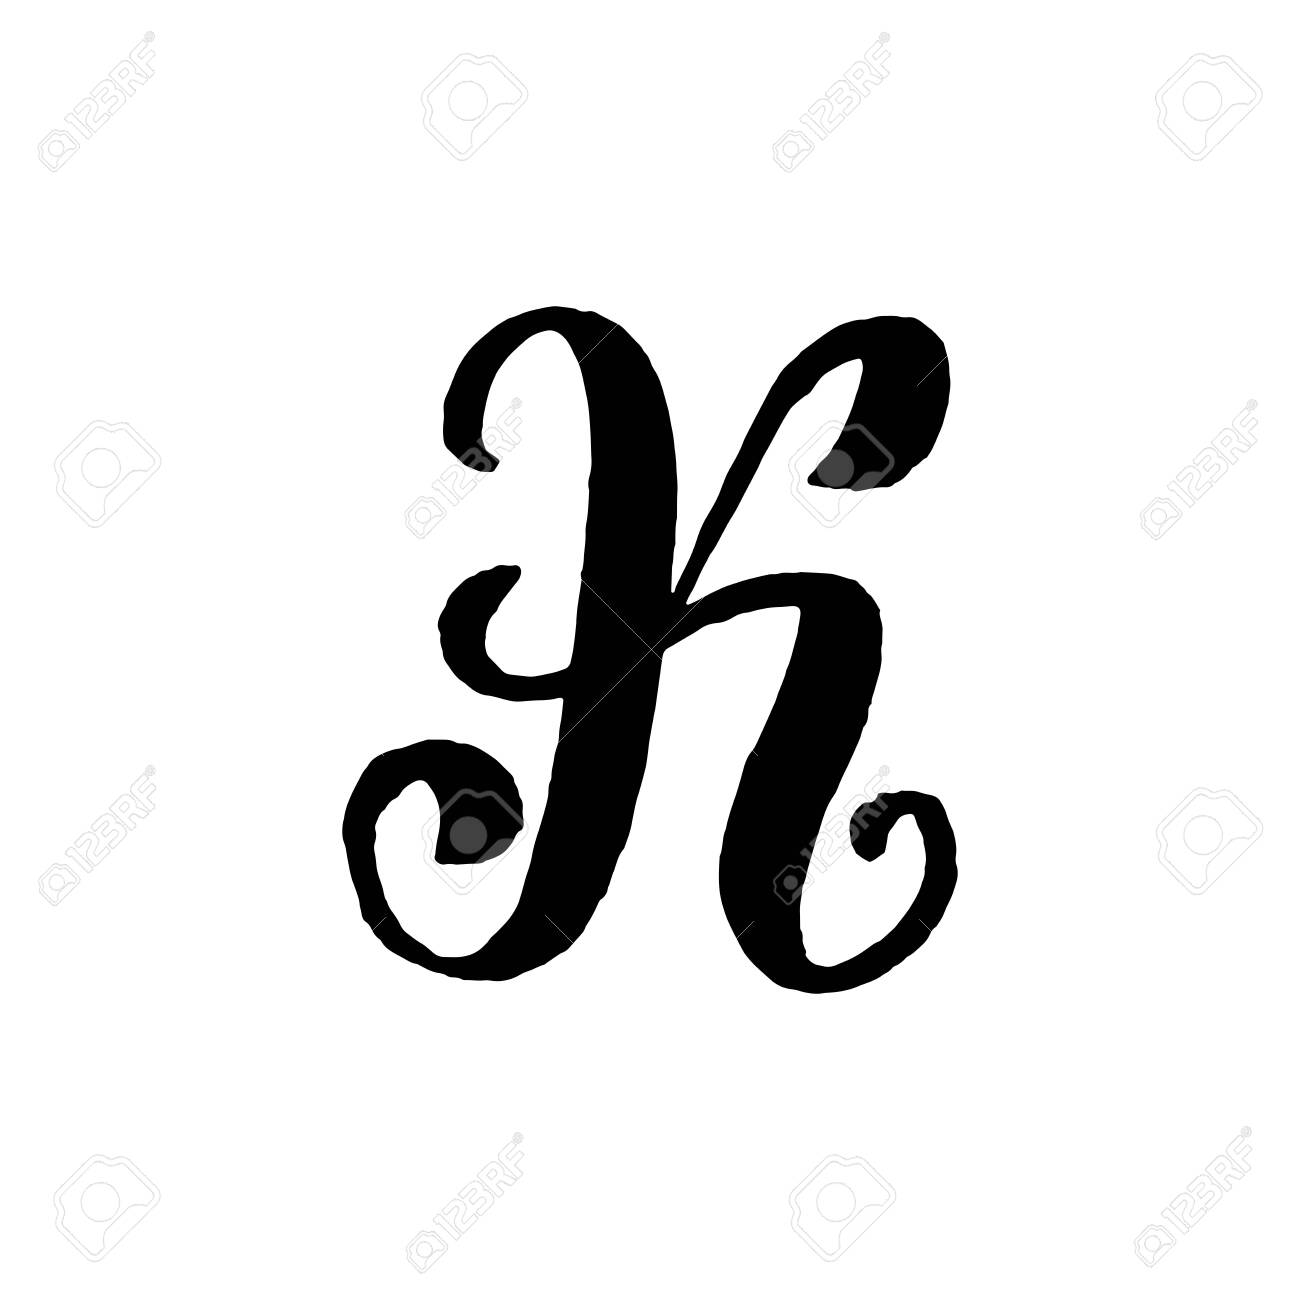 Beautiful Hand Written Capital Letter K With Curls On White Background